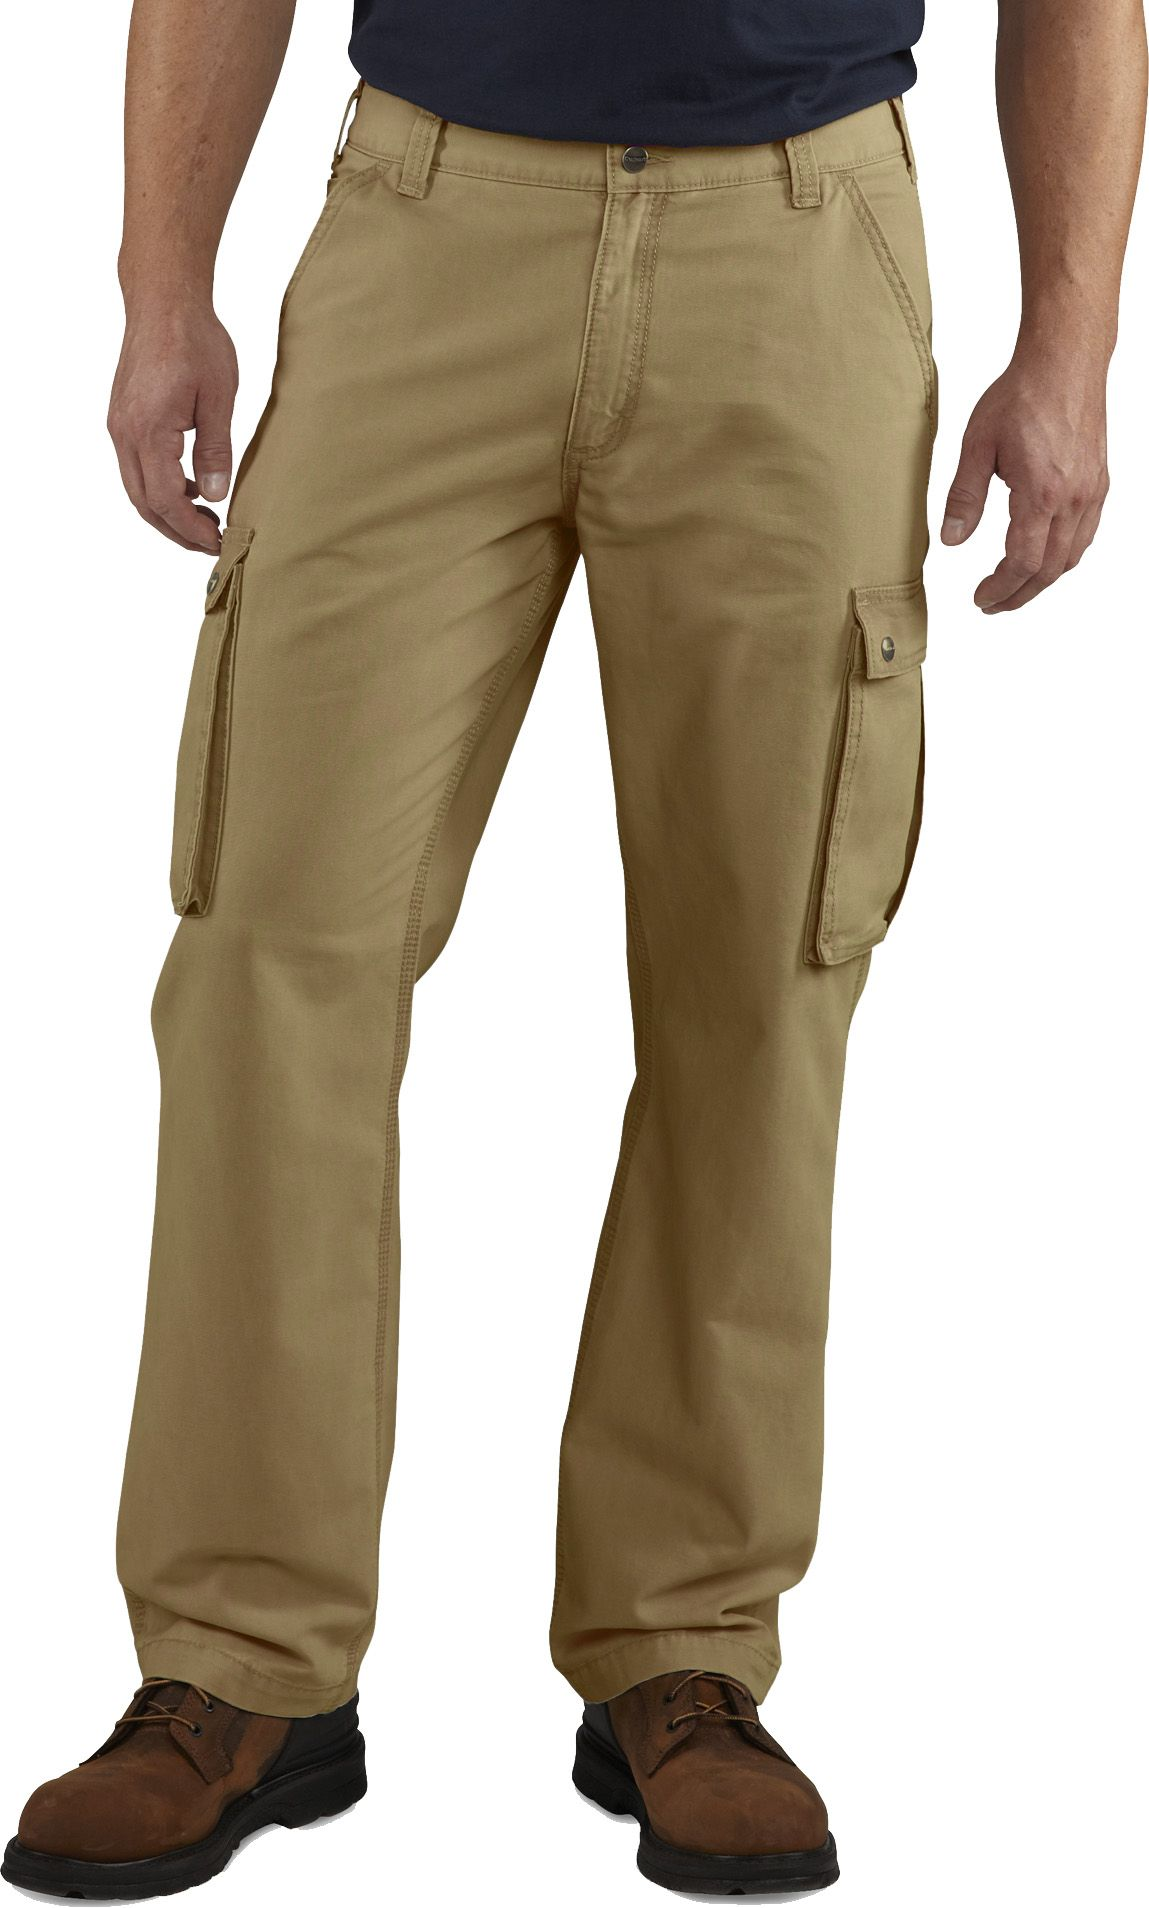 Carhartt Men's Rugged Cargo Pants| DICK'S Sporting Goods